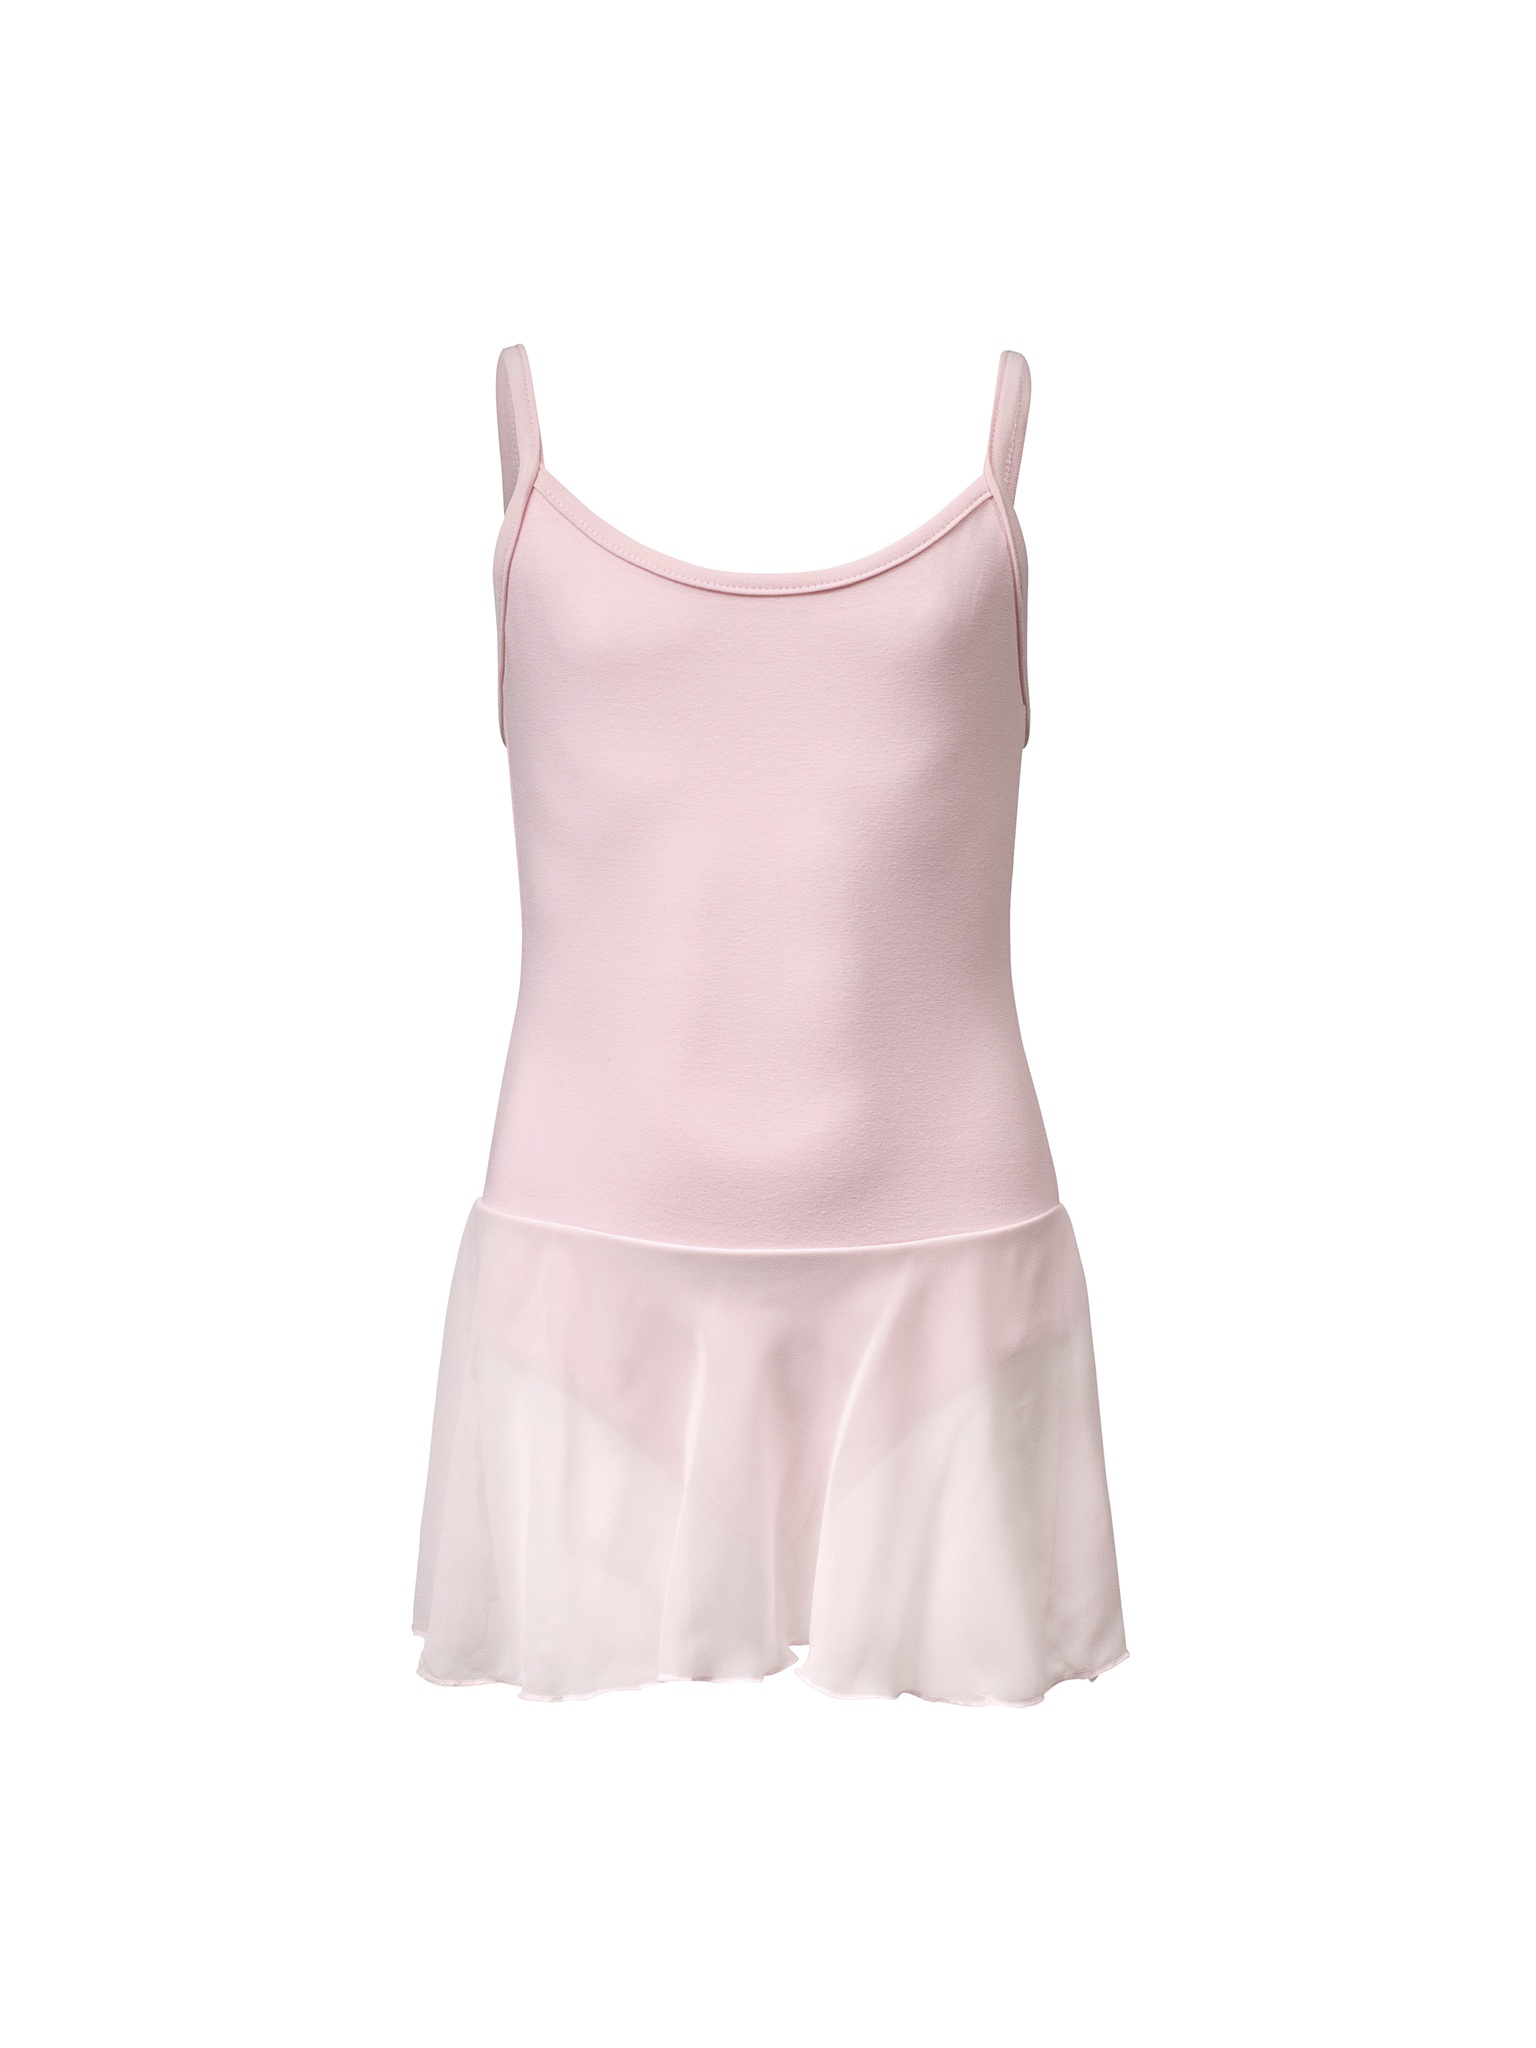 Image of   Papillon Leotard Spaghetti Strap skirt voile cotton Girls - Pink - 10